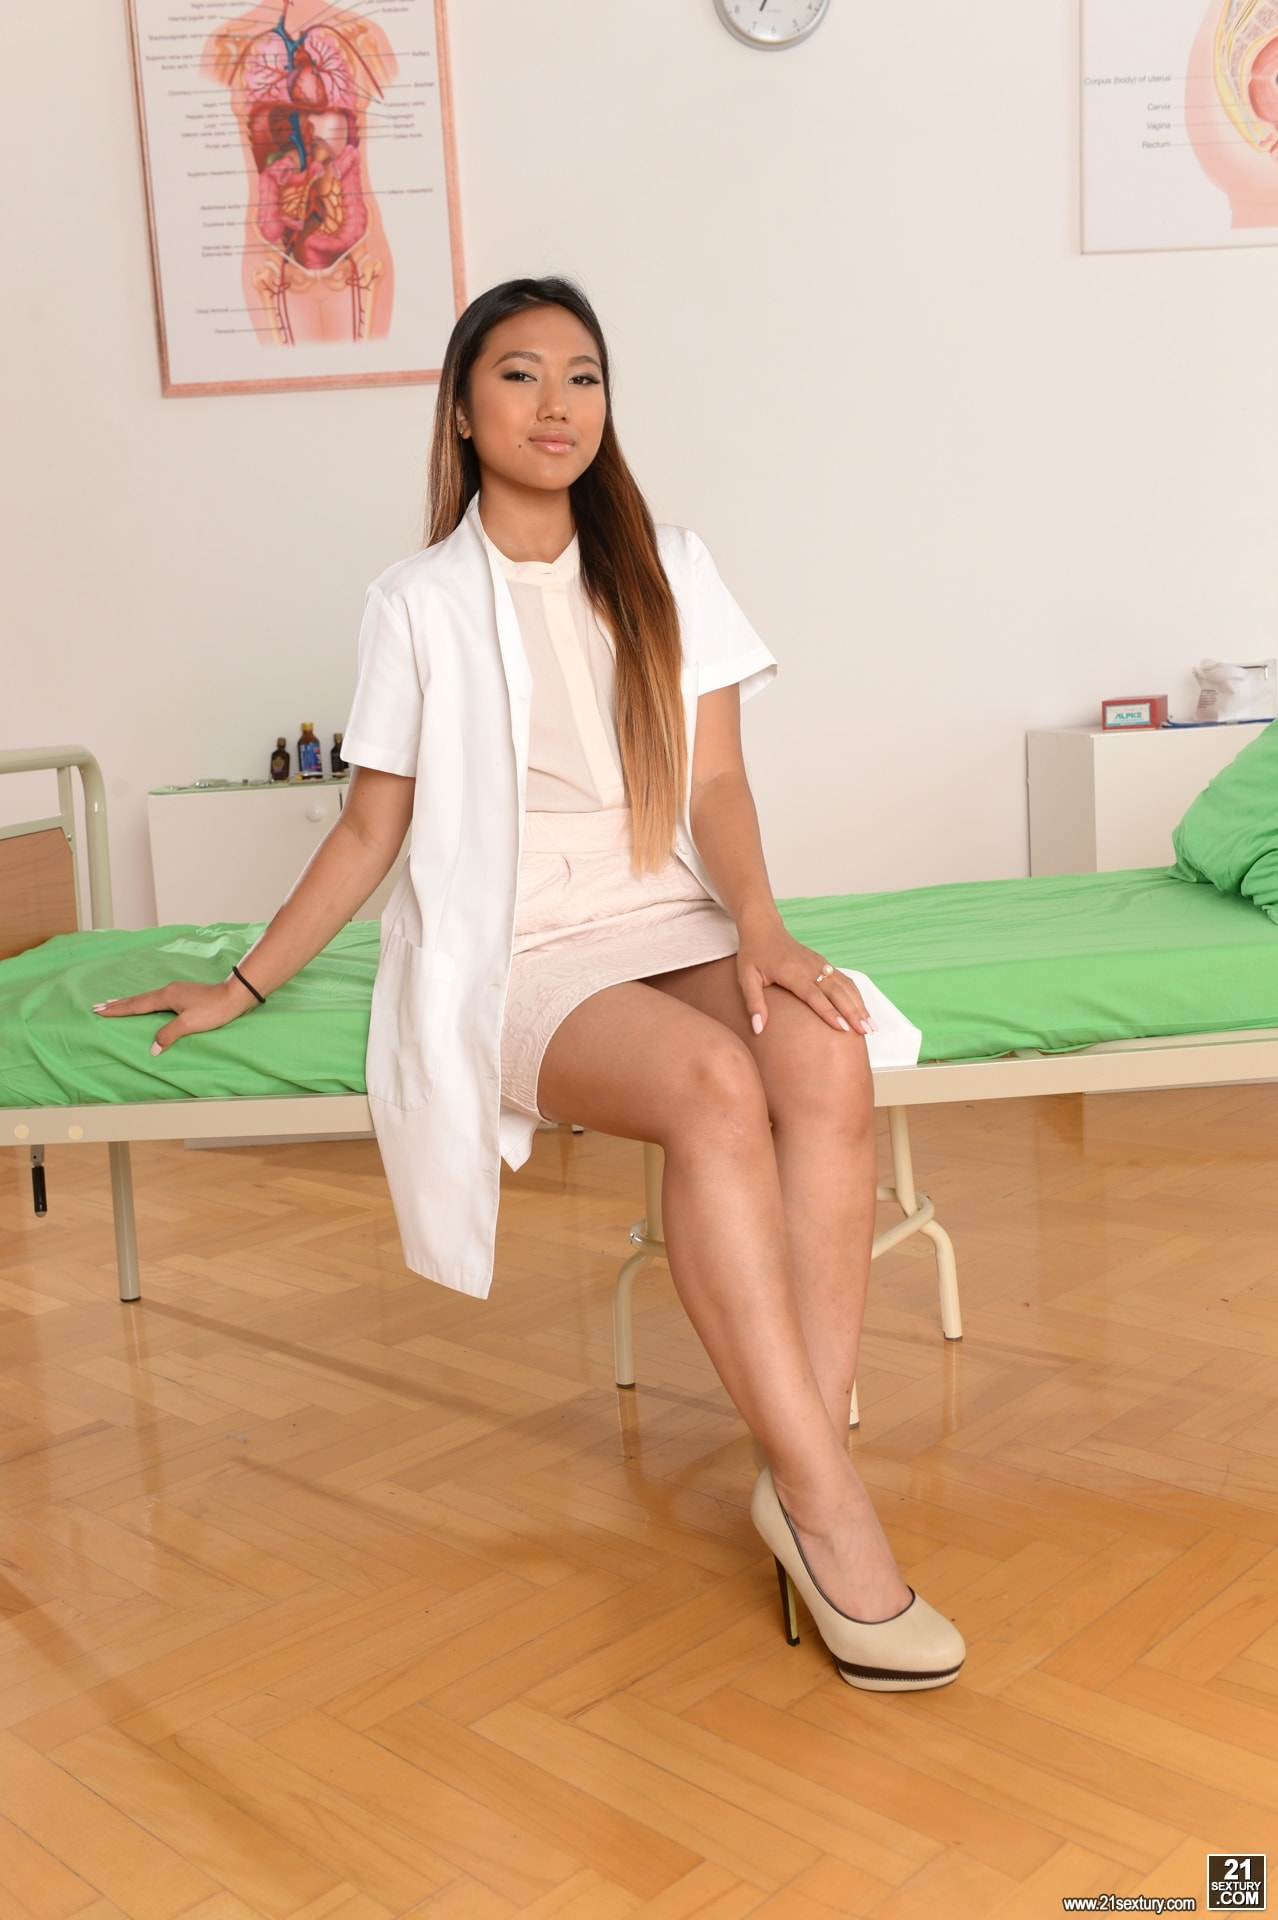 21Sextury 'Patient and Doc Double Penetrate The Nurse' starring Mai Thai (Photo 1)